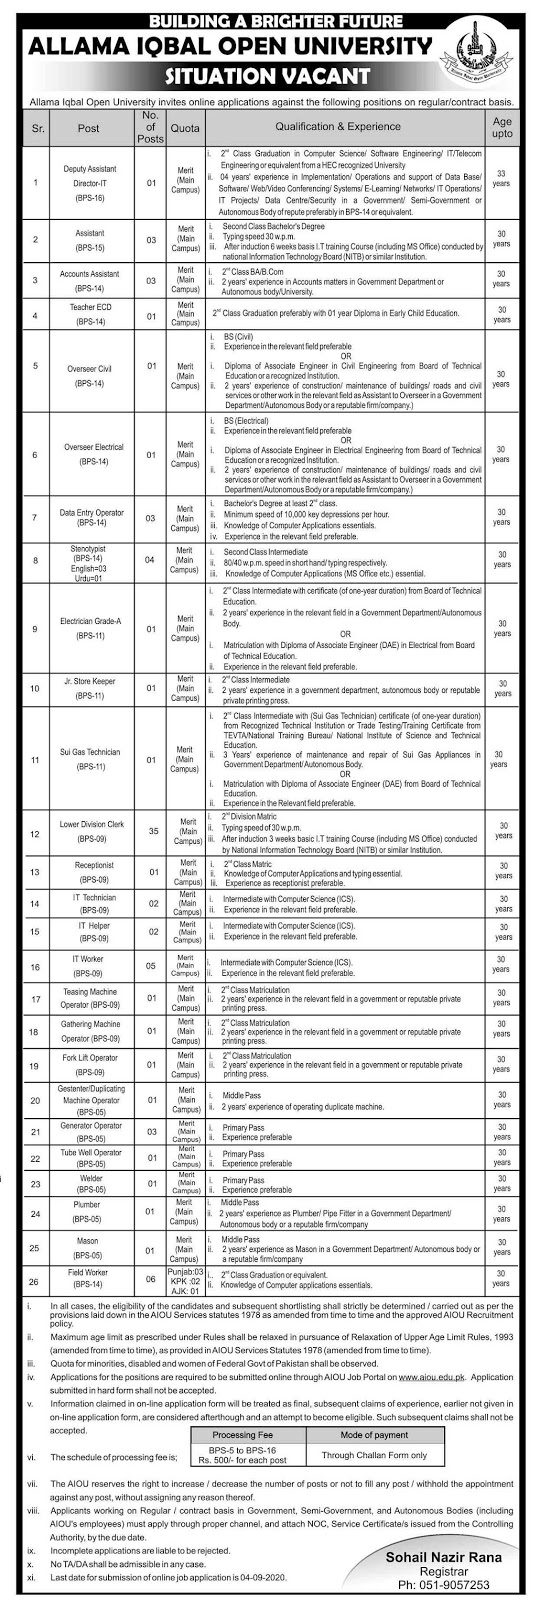 80+ Jobs in Allama Iqbal Open University AIOU Jobs 2020 | Multiple Positions